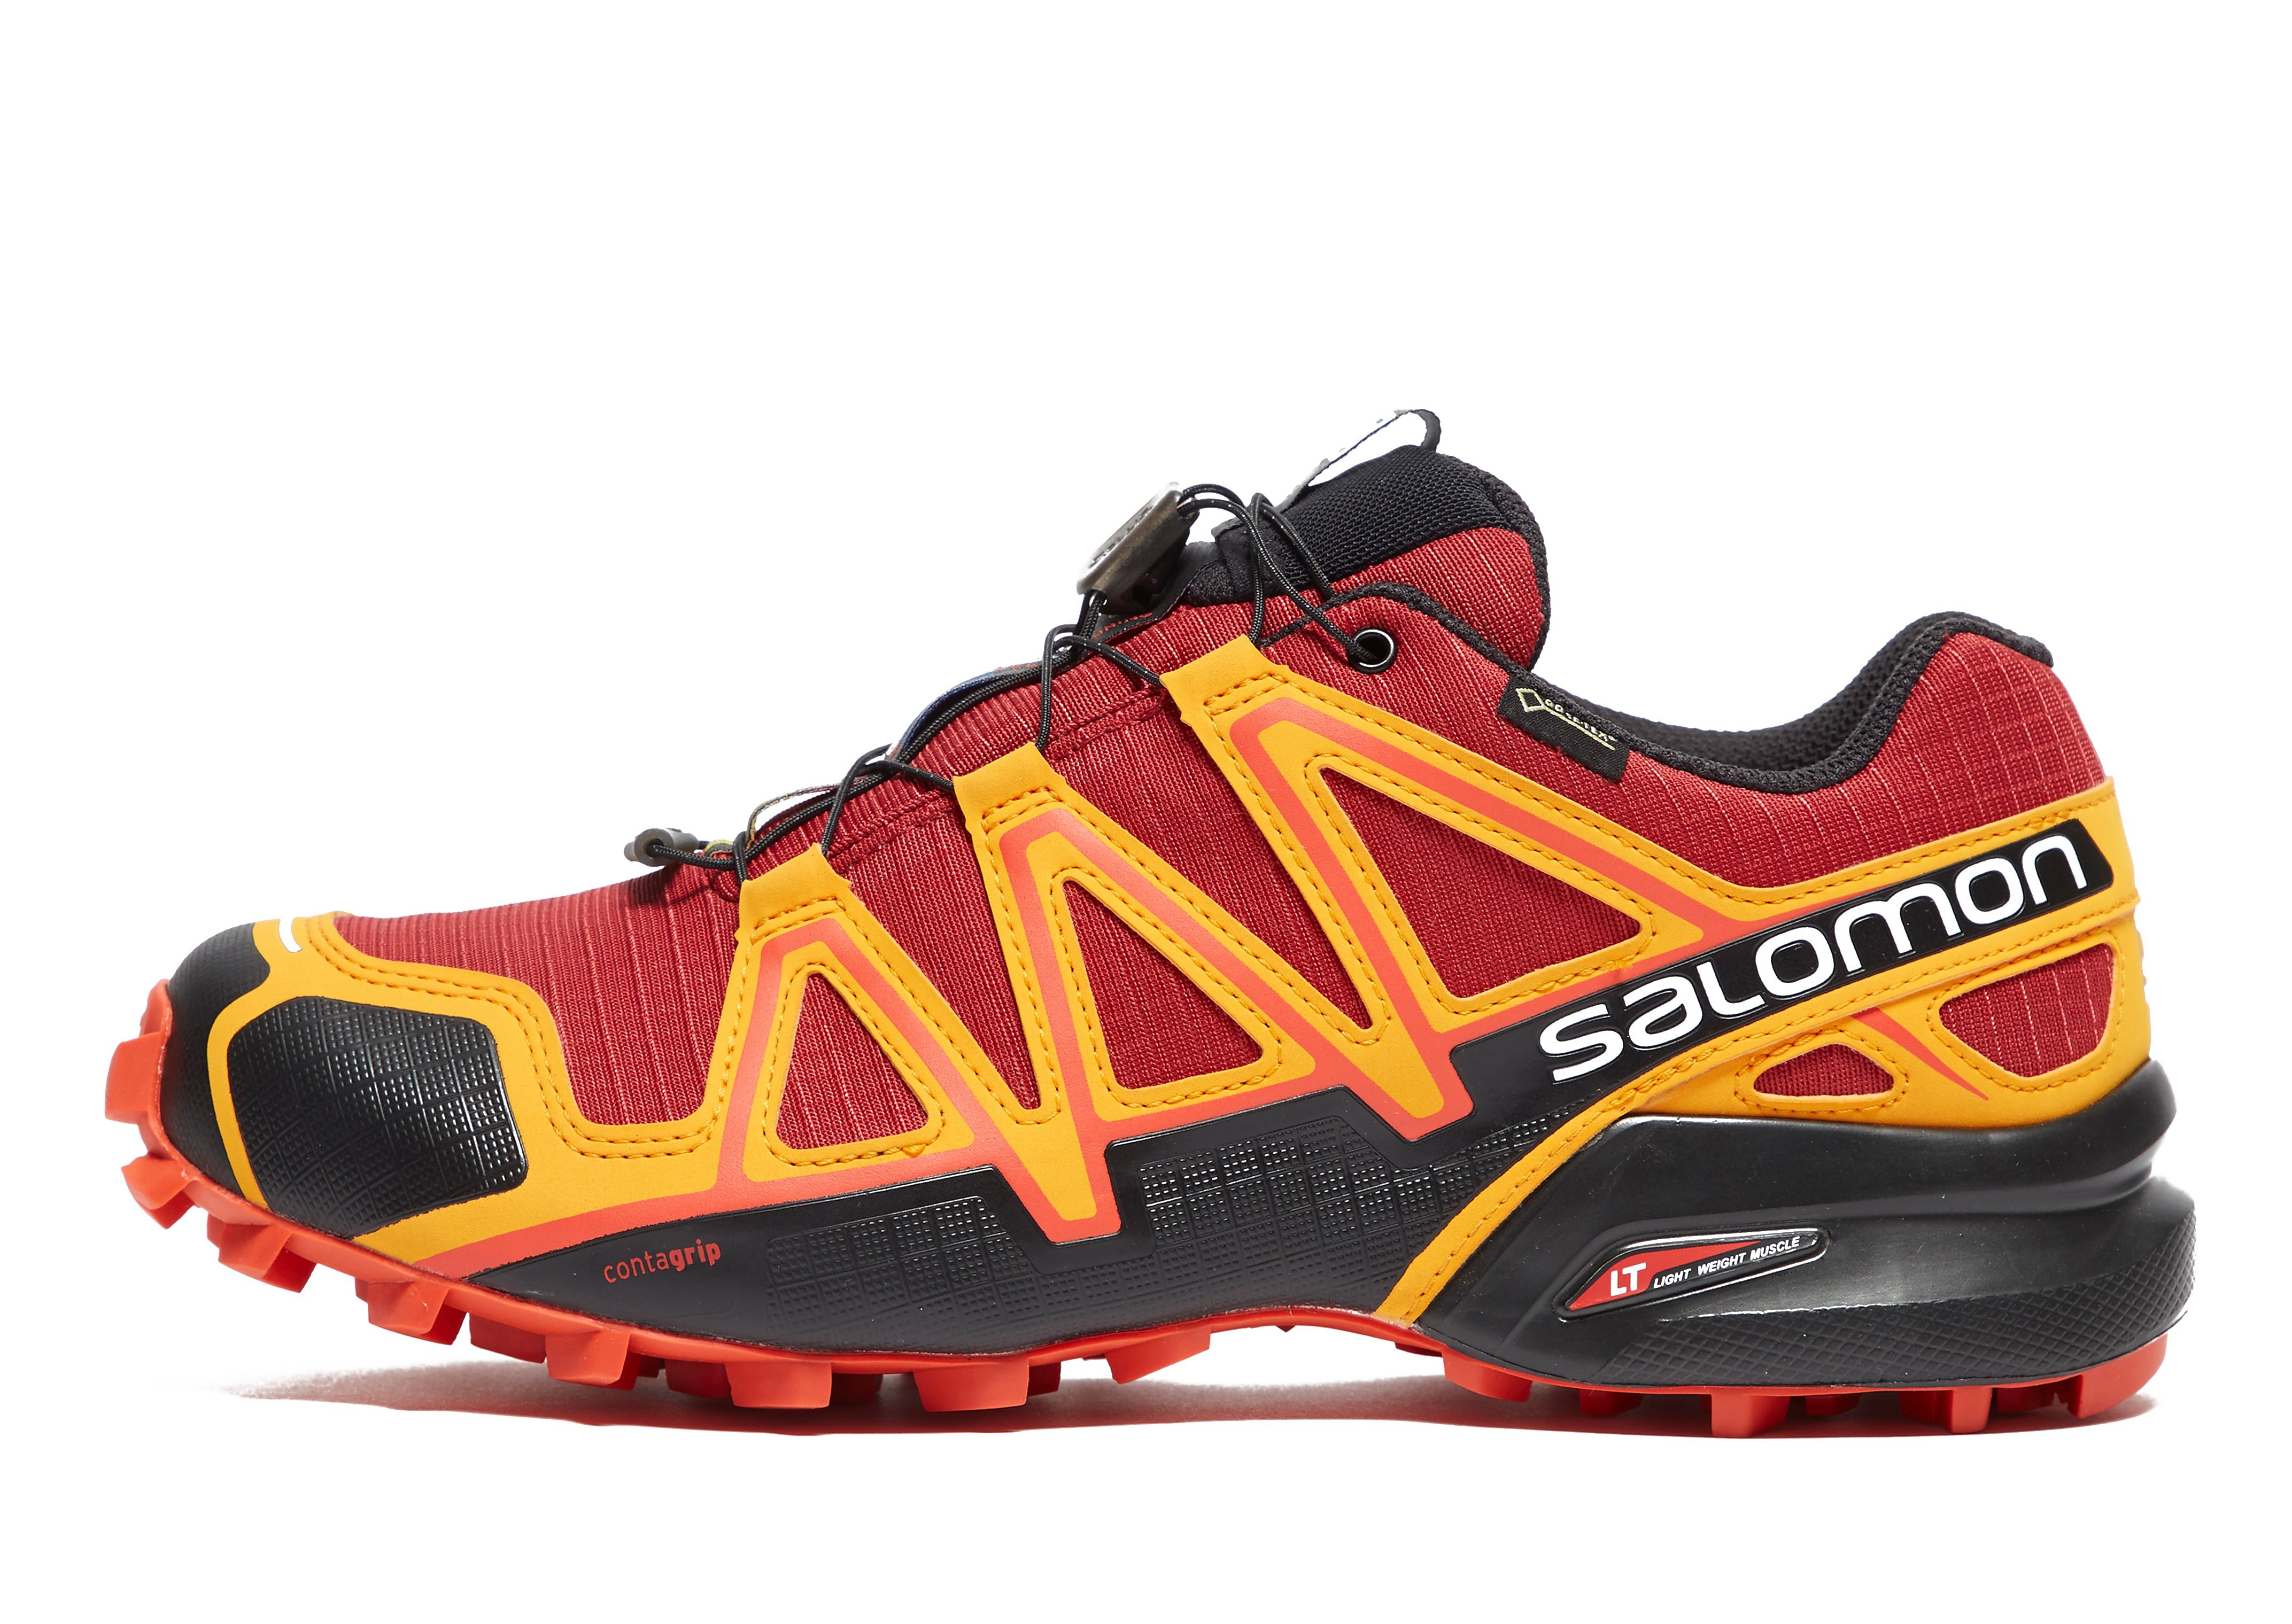 Salomon Speedcross 4 GTX Trail Running Shoes